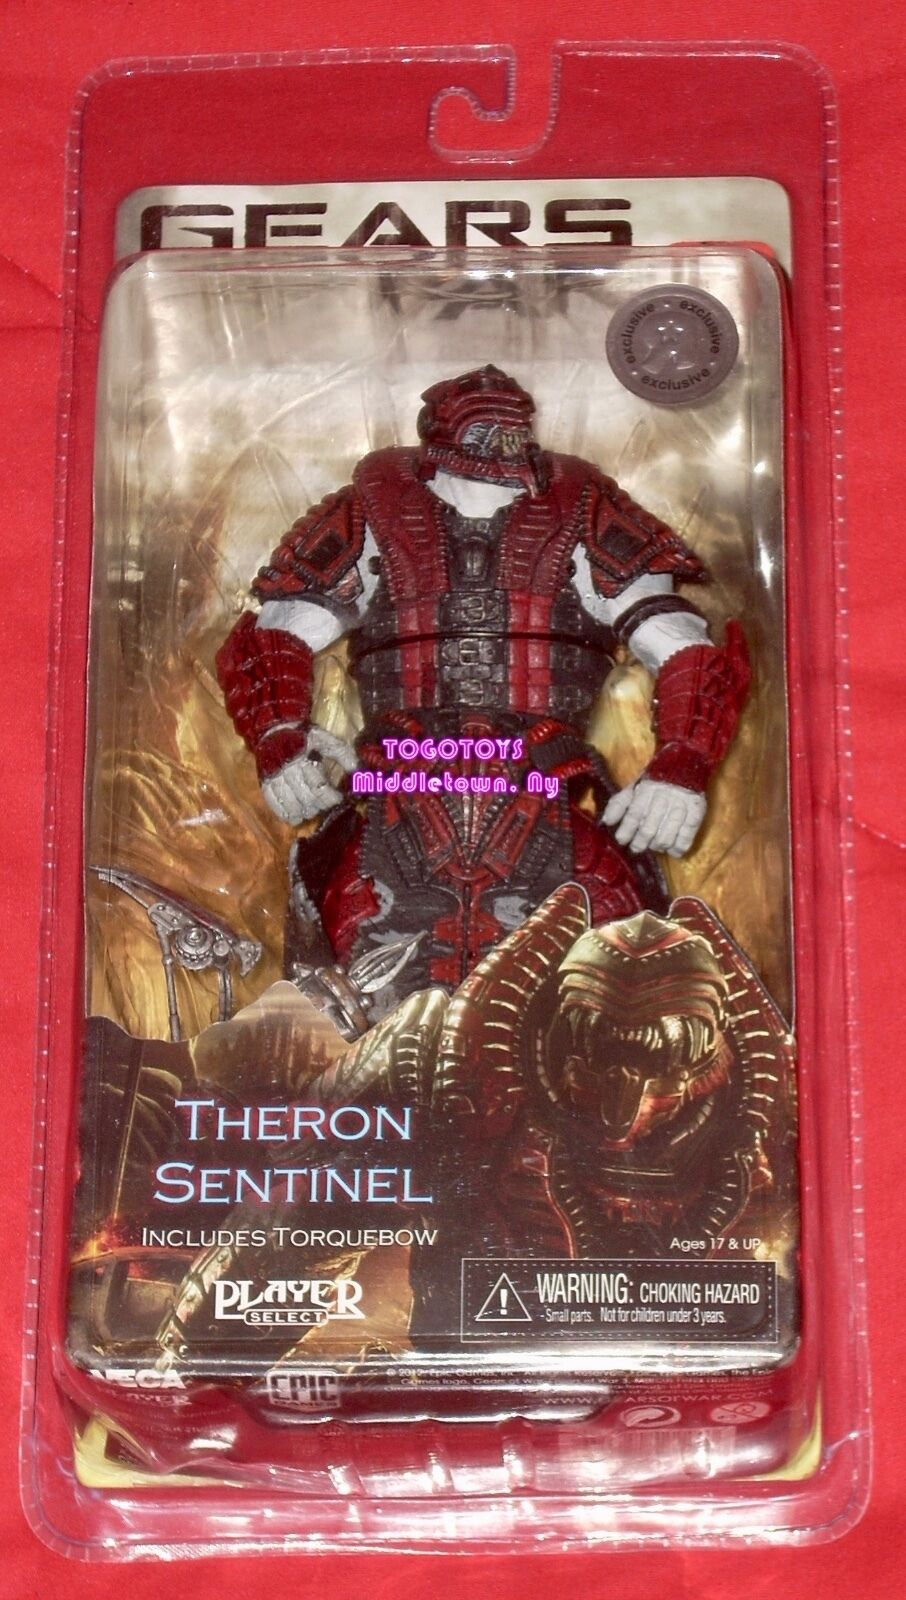 Neca Gears of War 3 Theron Sentinel Toys R Us Exclusive Action Figure